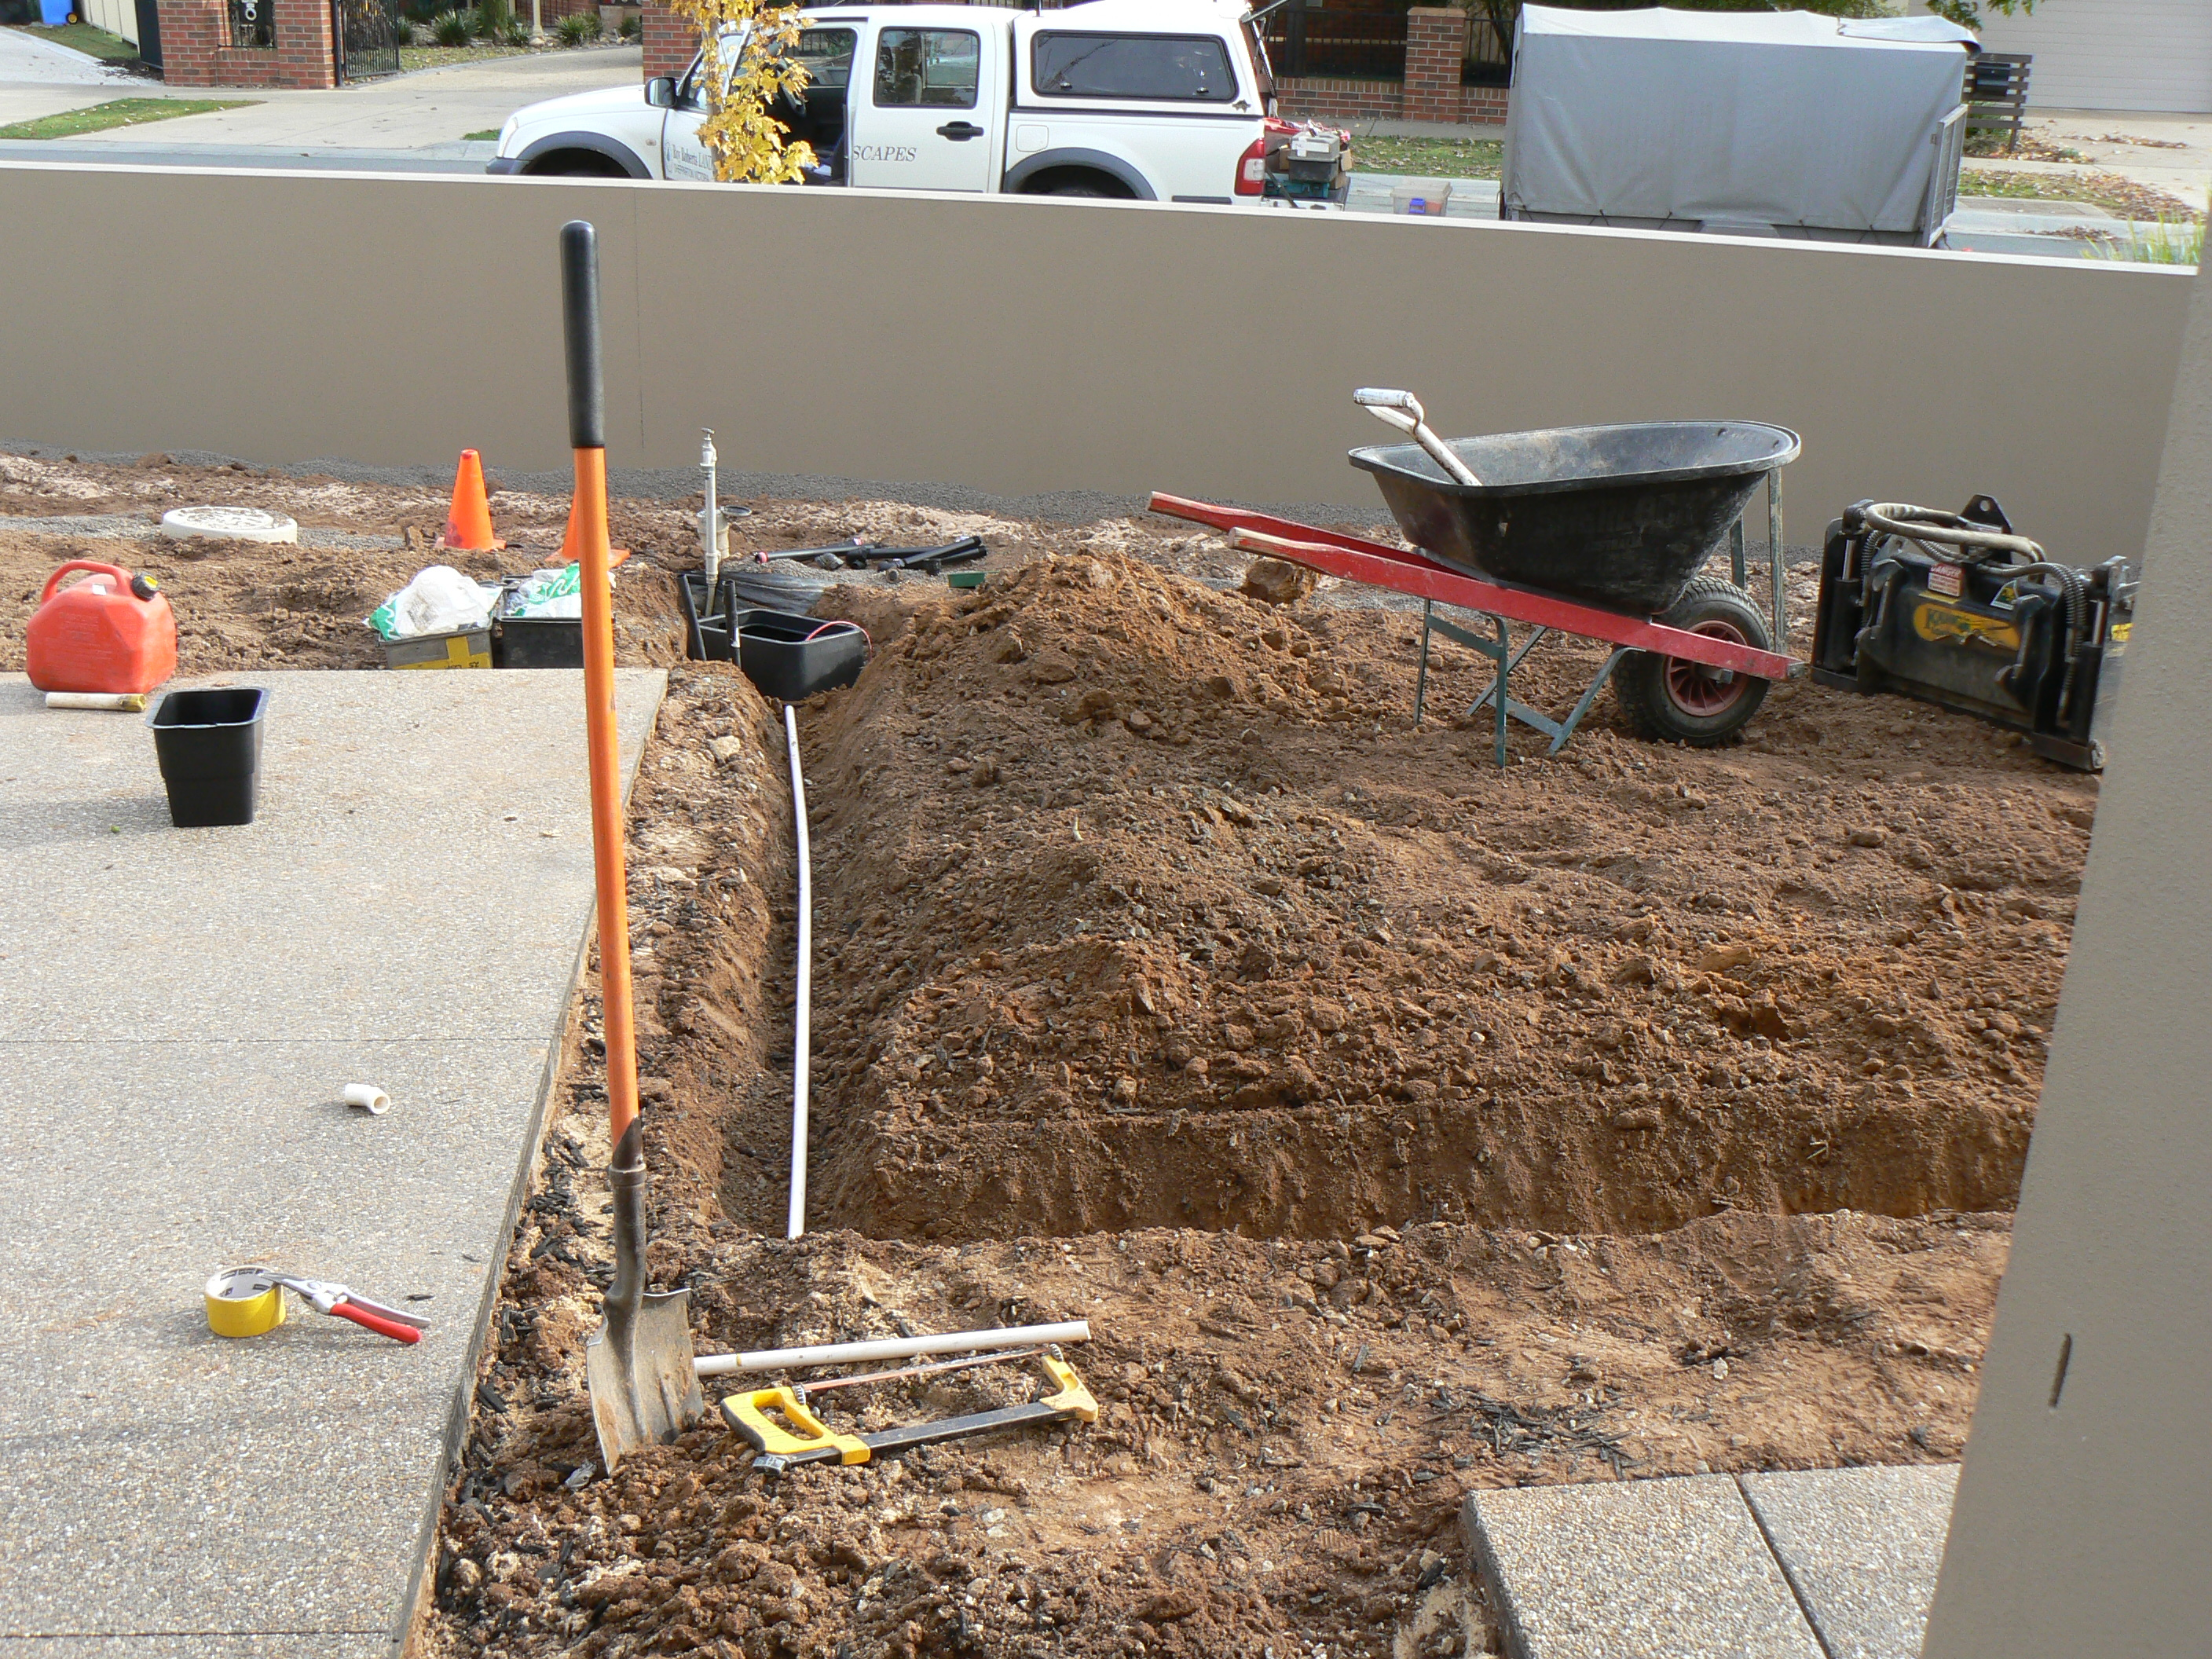 Irrigation cabling in conduit